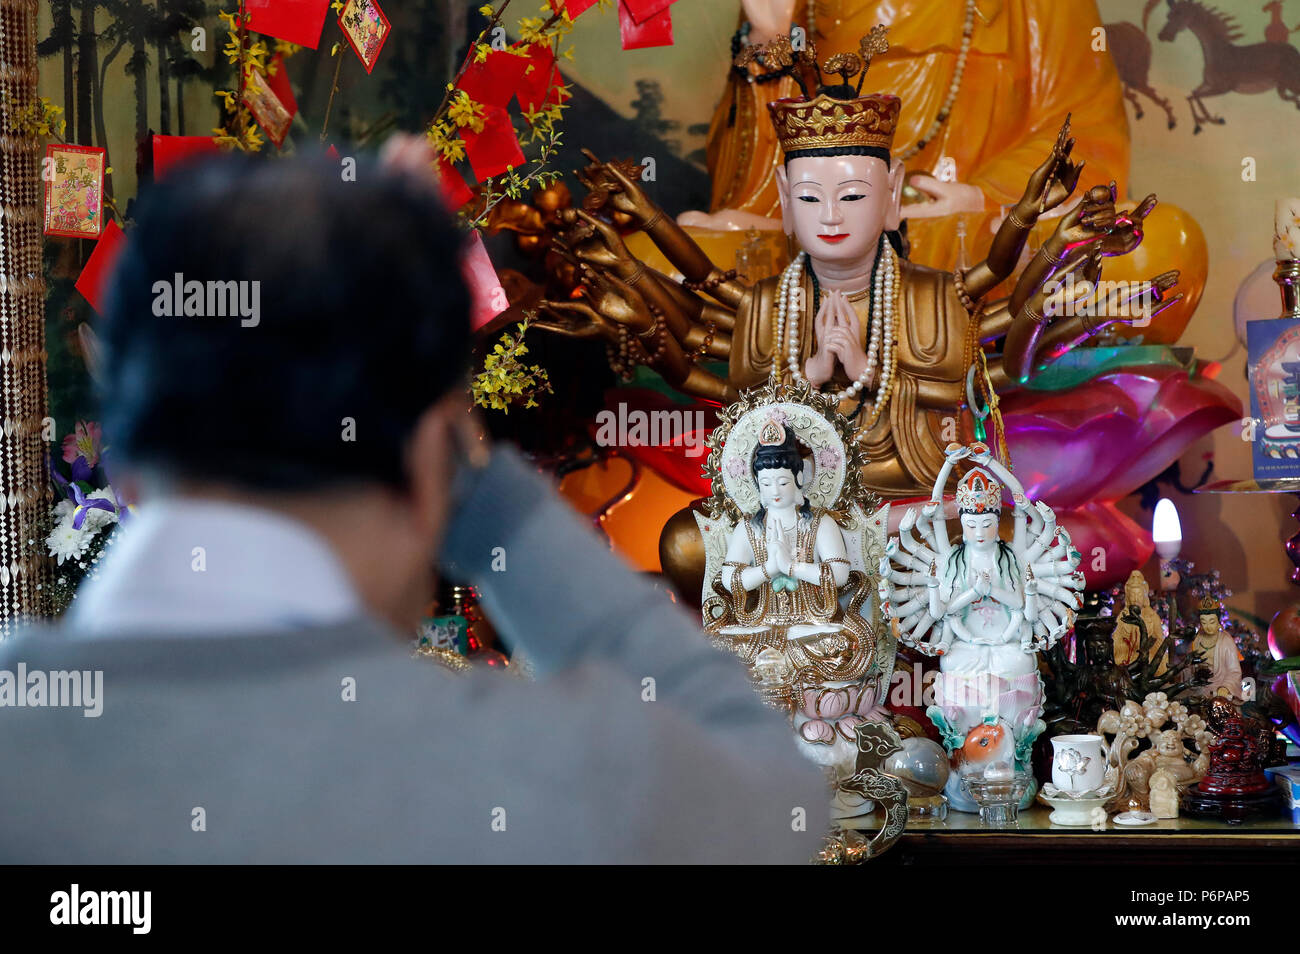 Chua Tu An Buddhist temple.Buddhist worship.  Saint-Pierre en Faucigny. France. - Stock Image